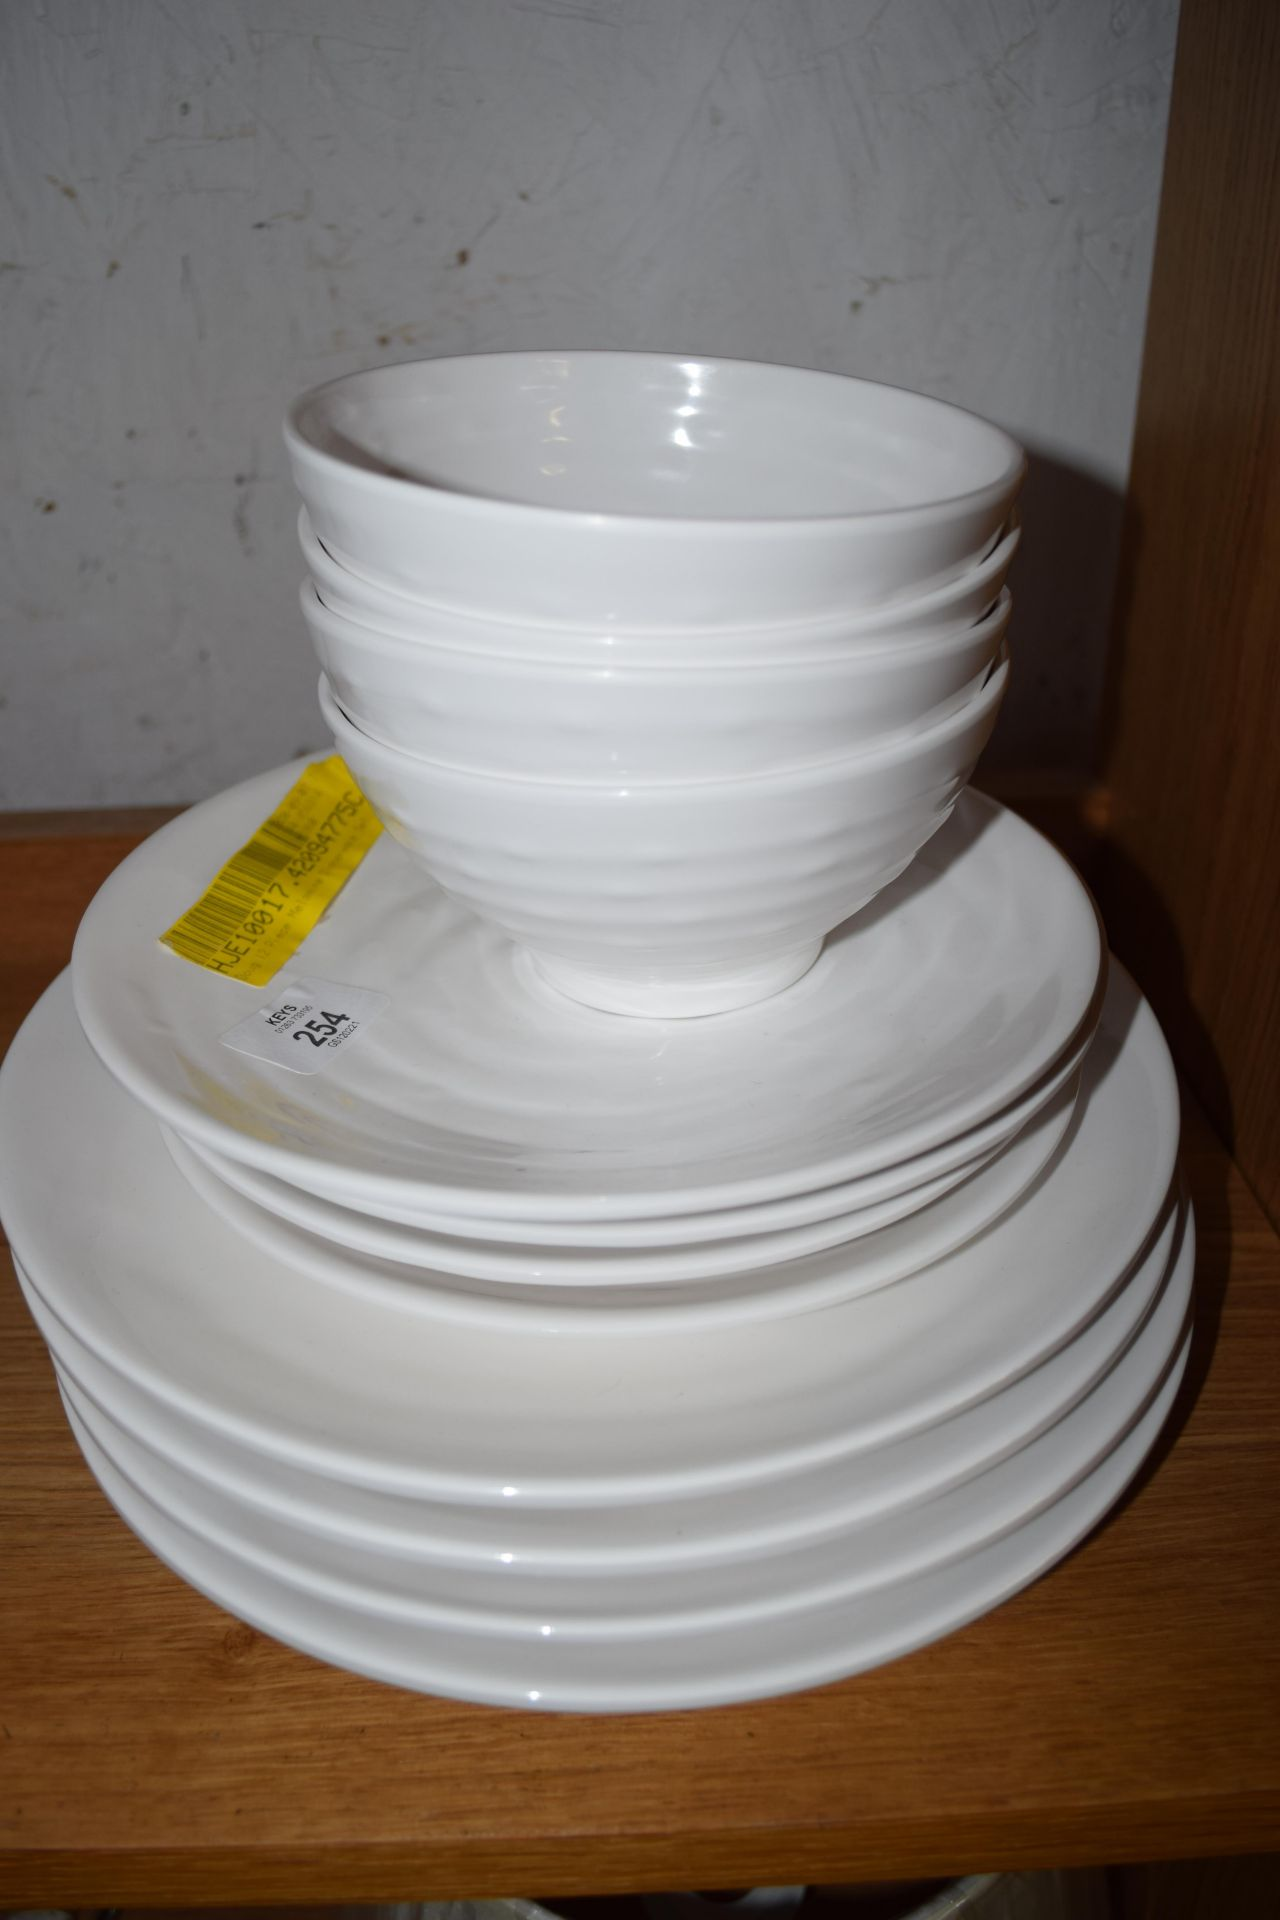 MOULDED PLASTIC PICNIC SET COMPRISING FOUR LARGE PLATES, FOUR SMALL PLATES AND FOUR BOWLS